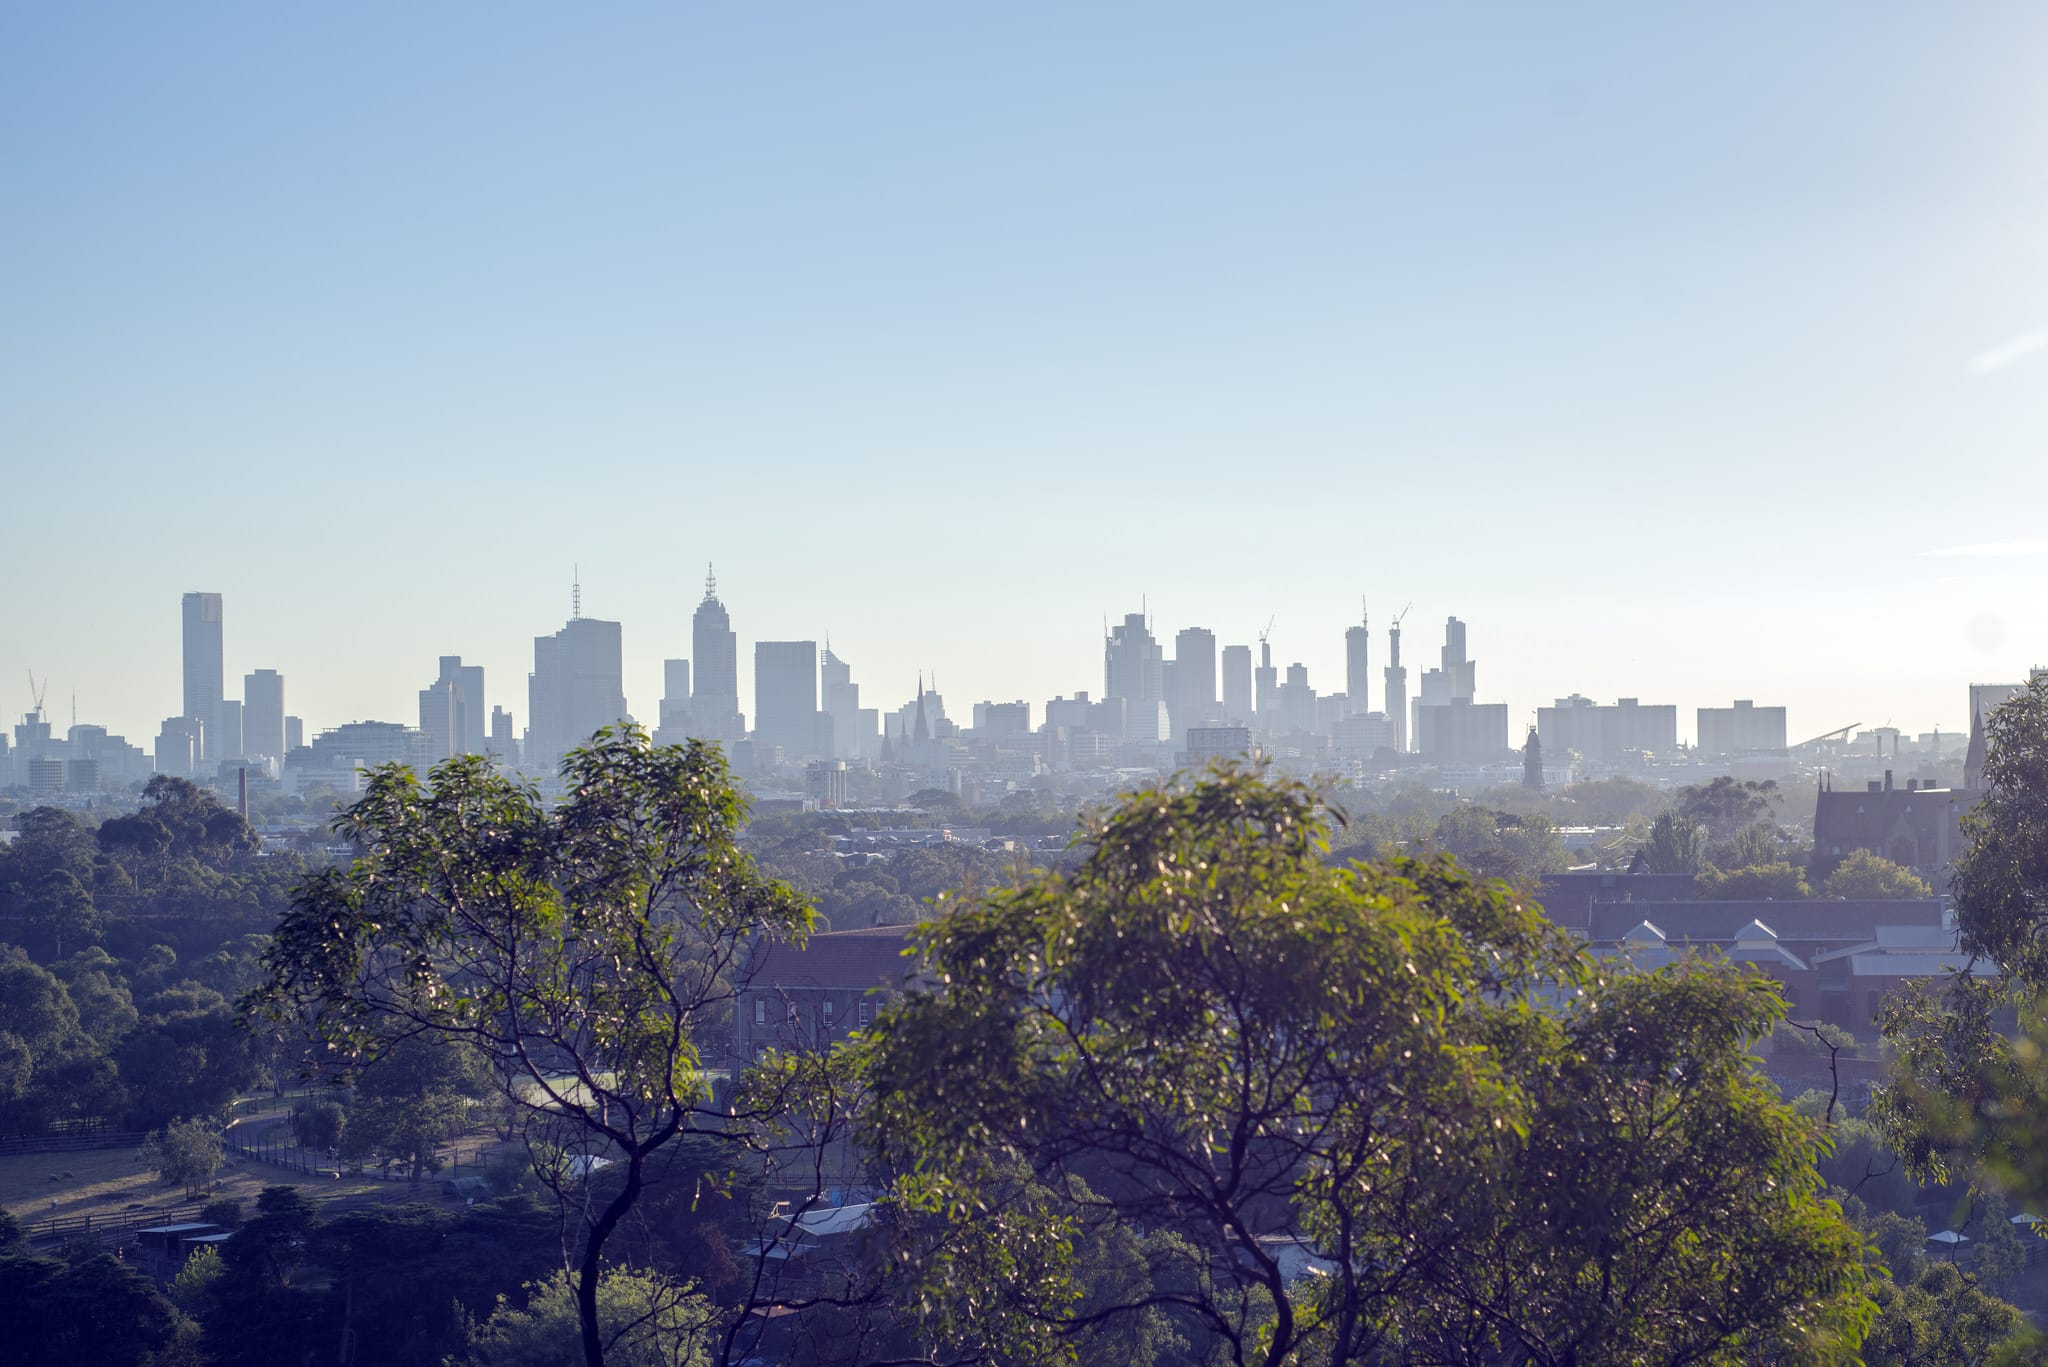 As Victoria's population soars, will large planning and transport initiatives keep pace?